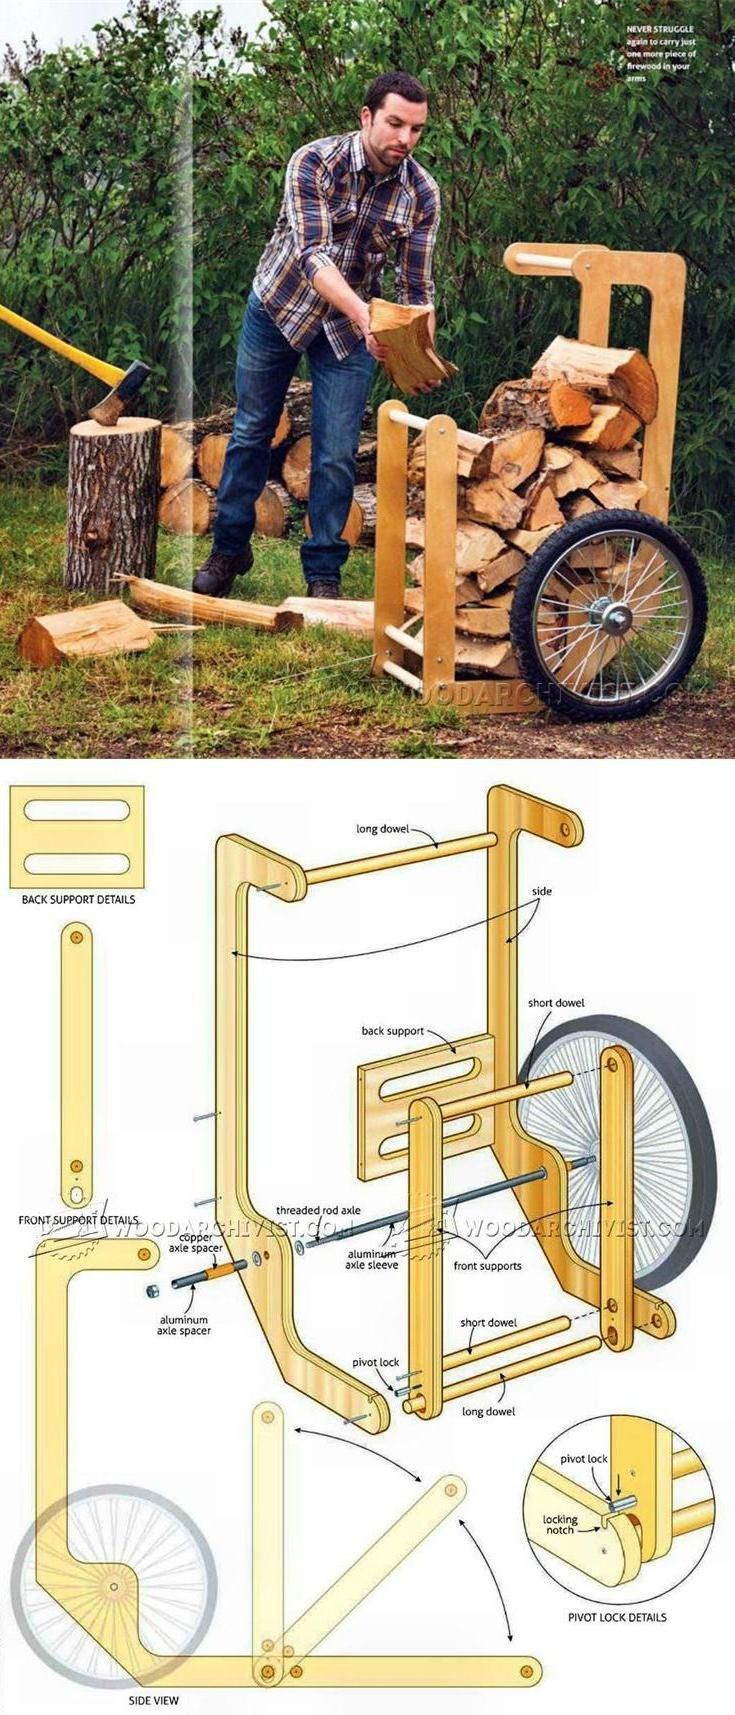 Firewood Cart Plans - Outdoor Plans and Projects | WoodArchivist.com (Diy Ideas Wood)